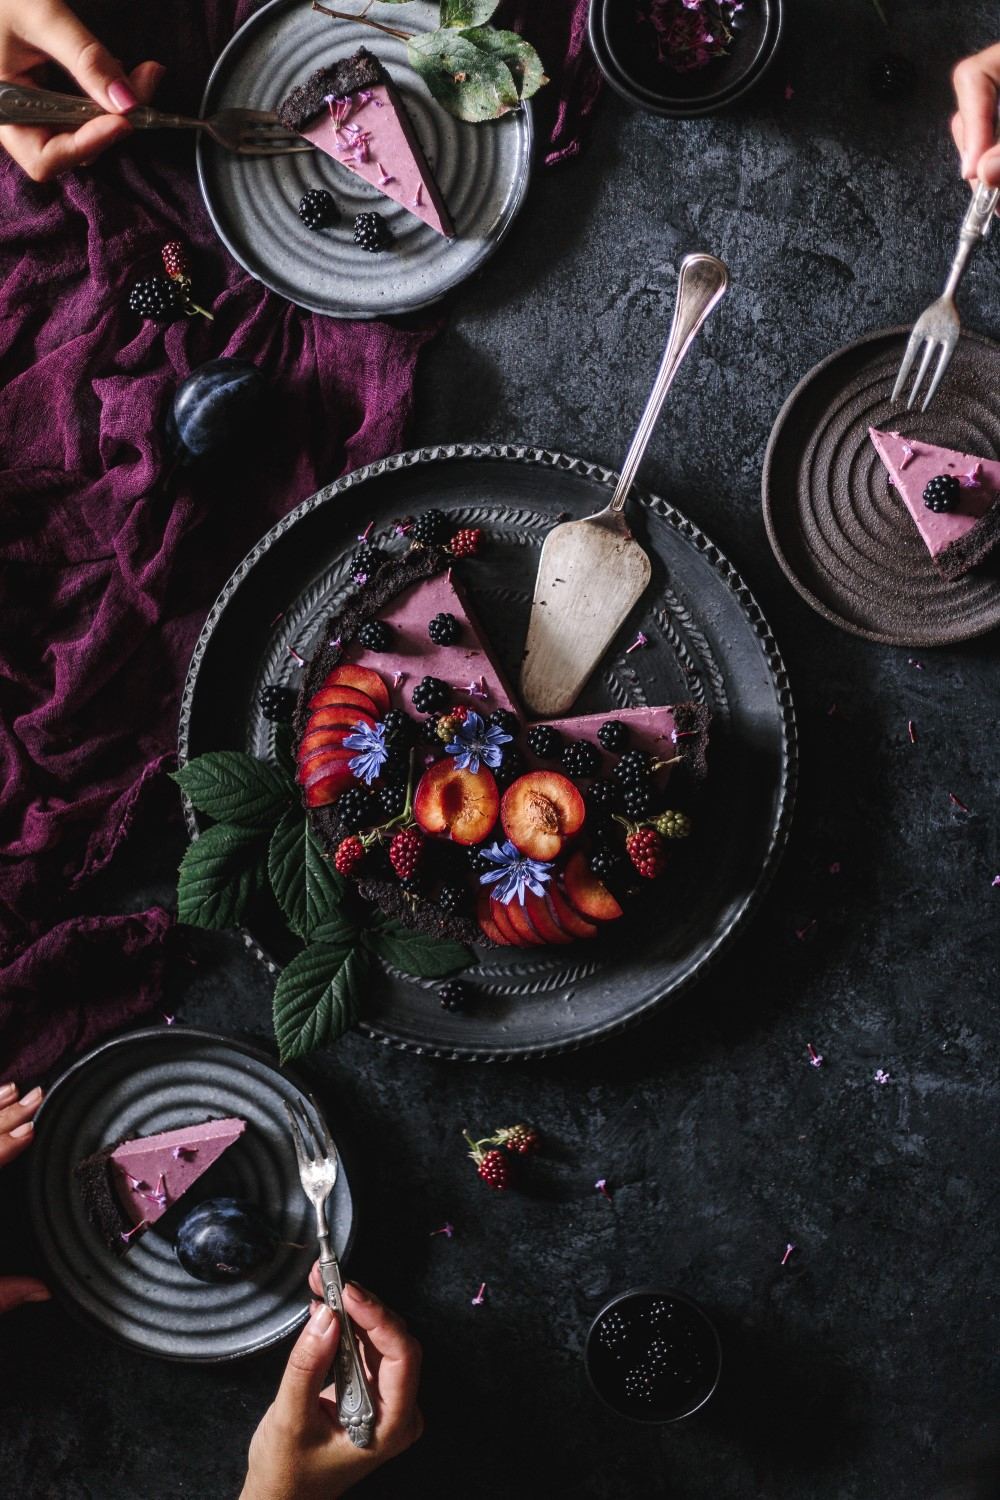 No-bake Blackberry-Plum Pie (Two Ways)